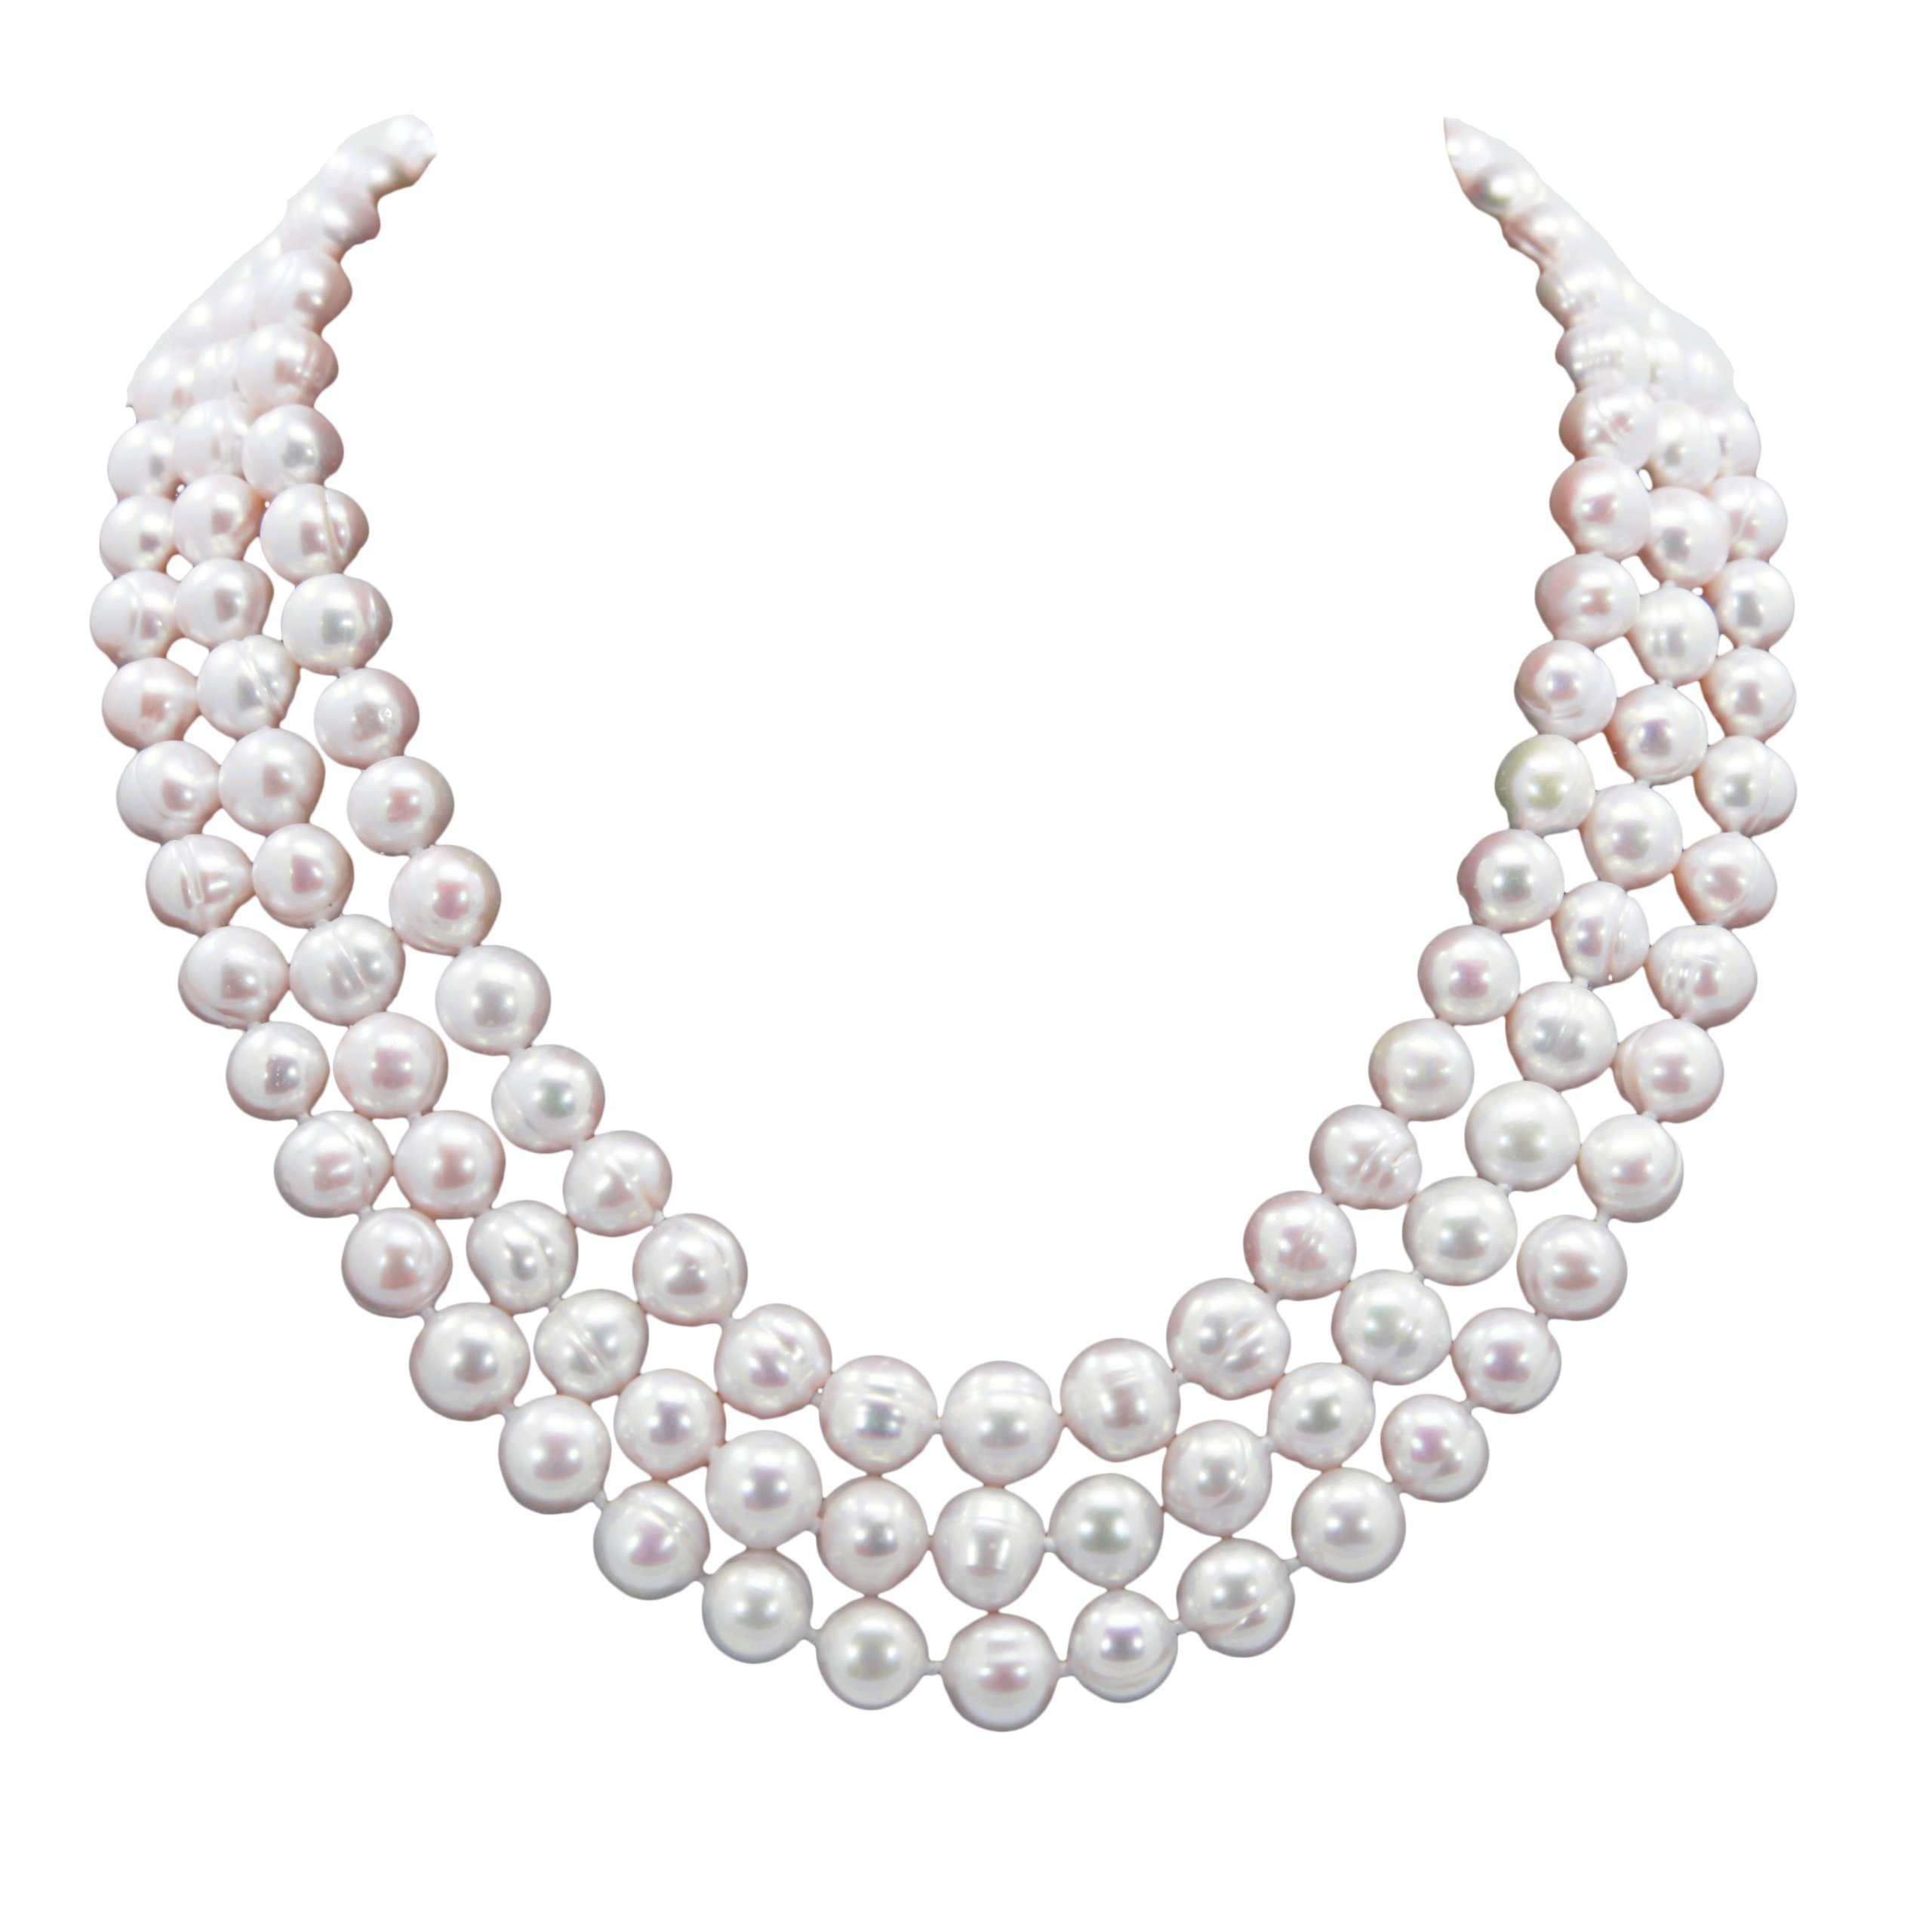 9.0-10.0 mm 3-row Handpicked Ultra-Luster White Circl?Freshwater Cultured Pearl Necklace 17'', 18''/19''